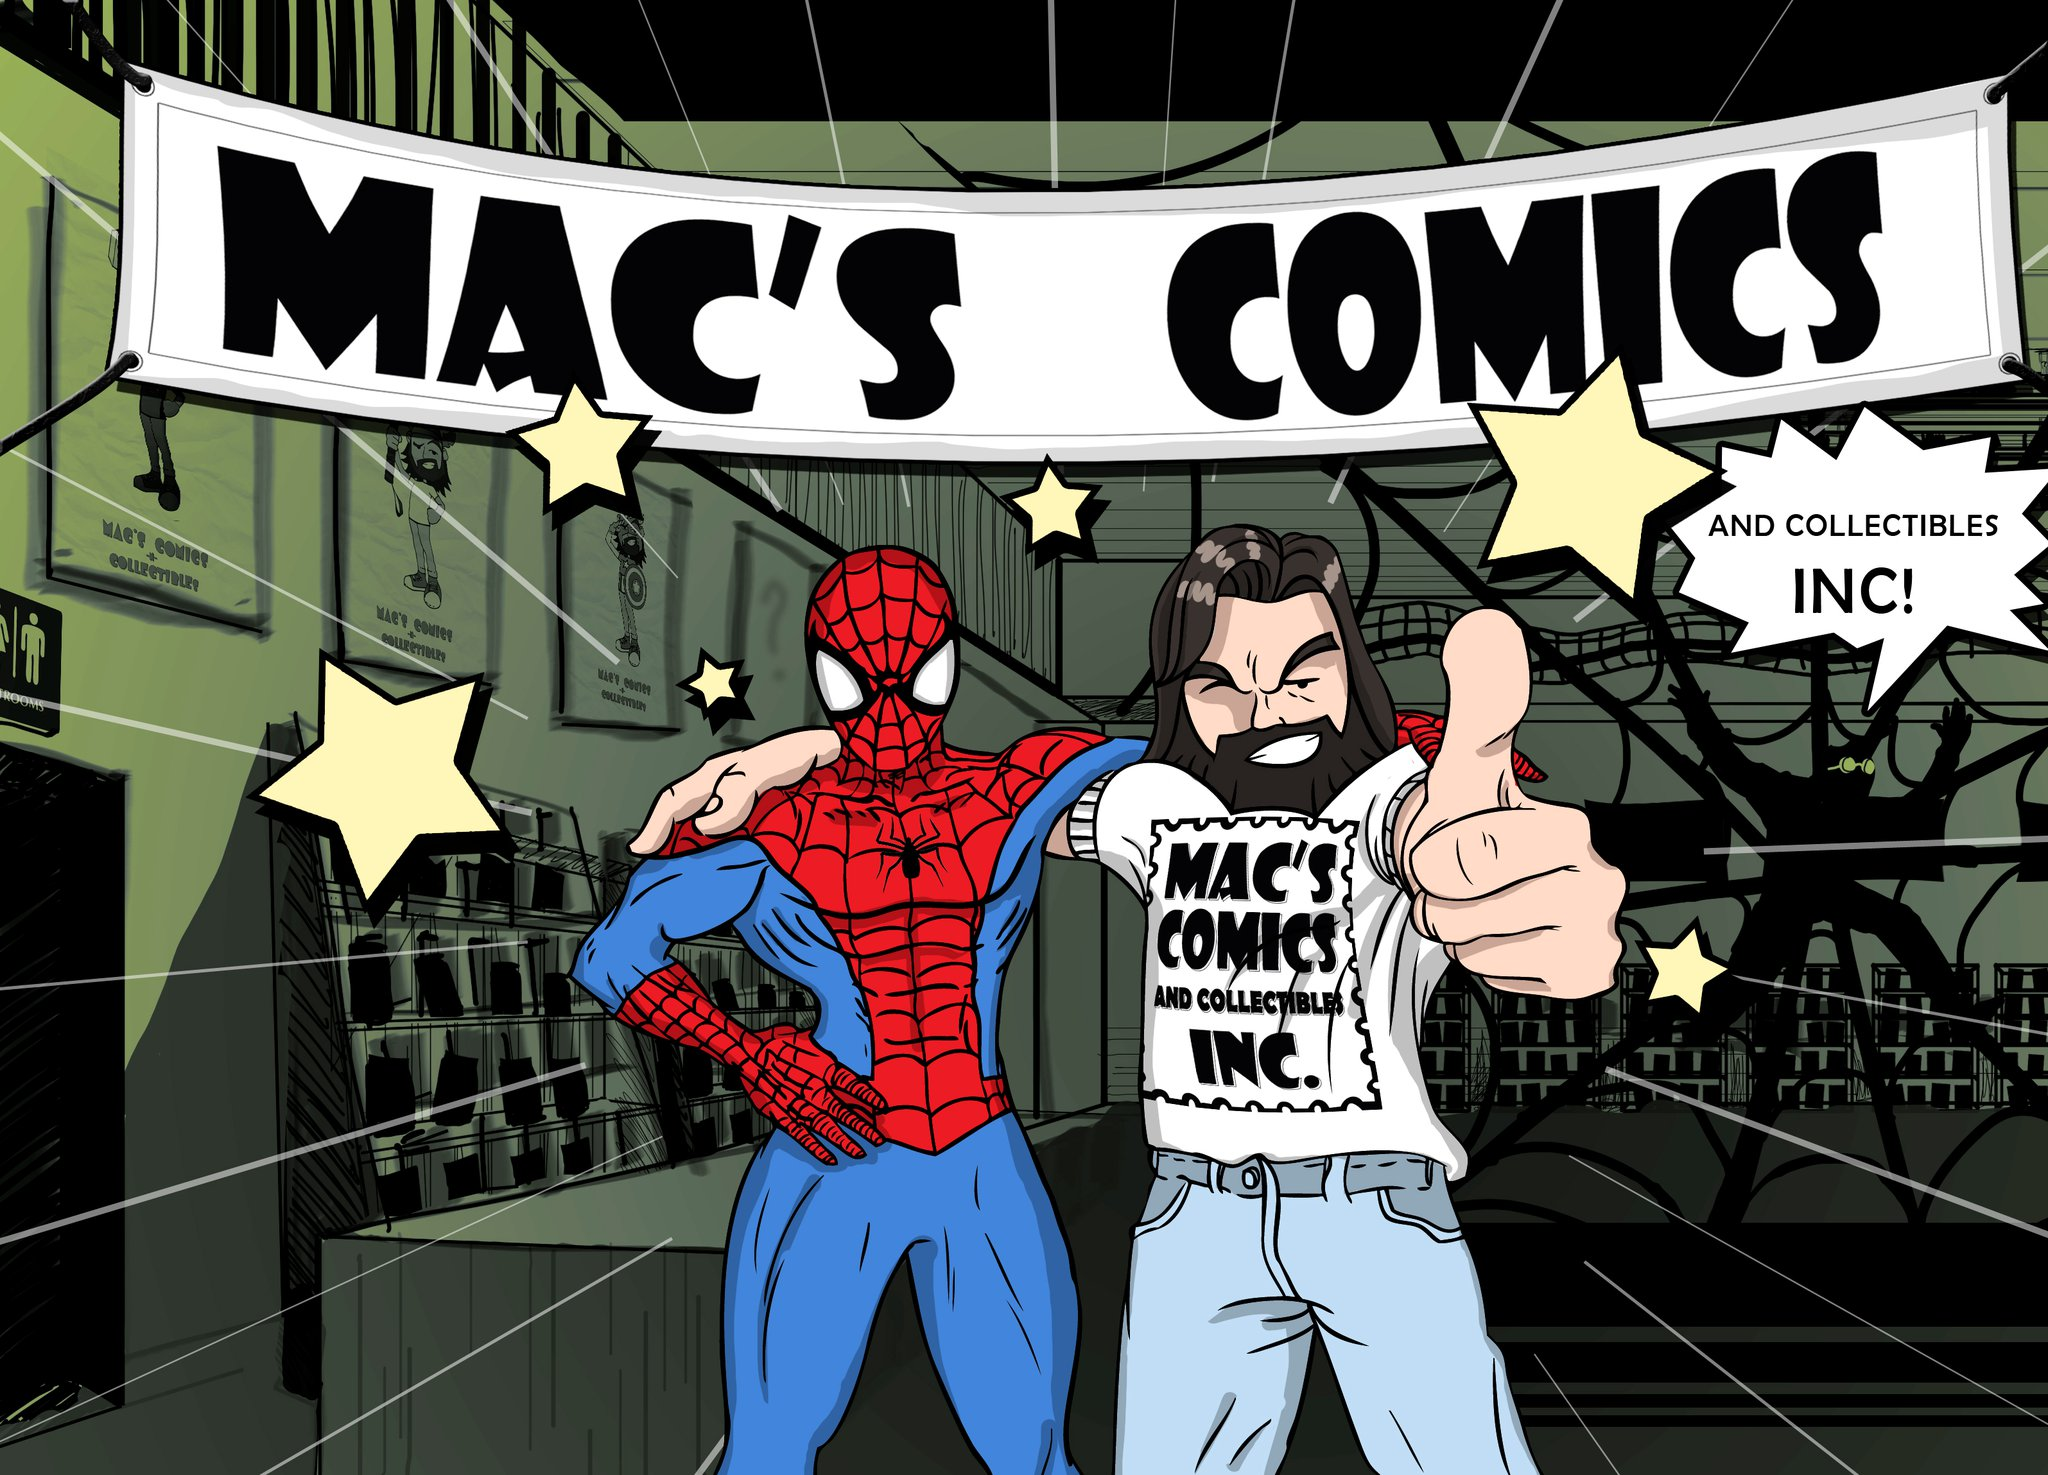 Mac's Comics & Collectibles - Miami Collectibles